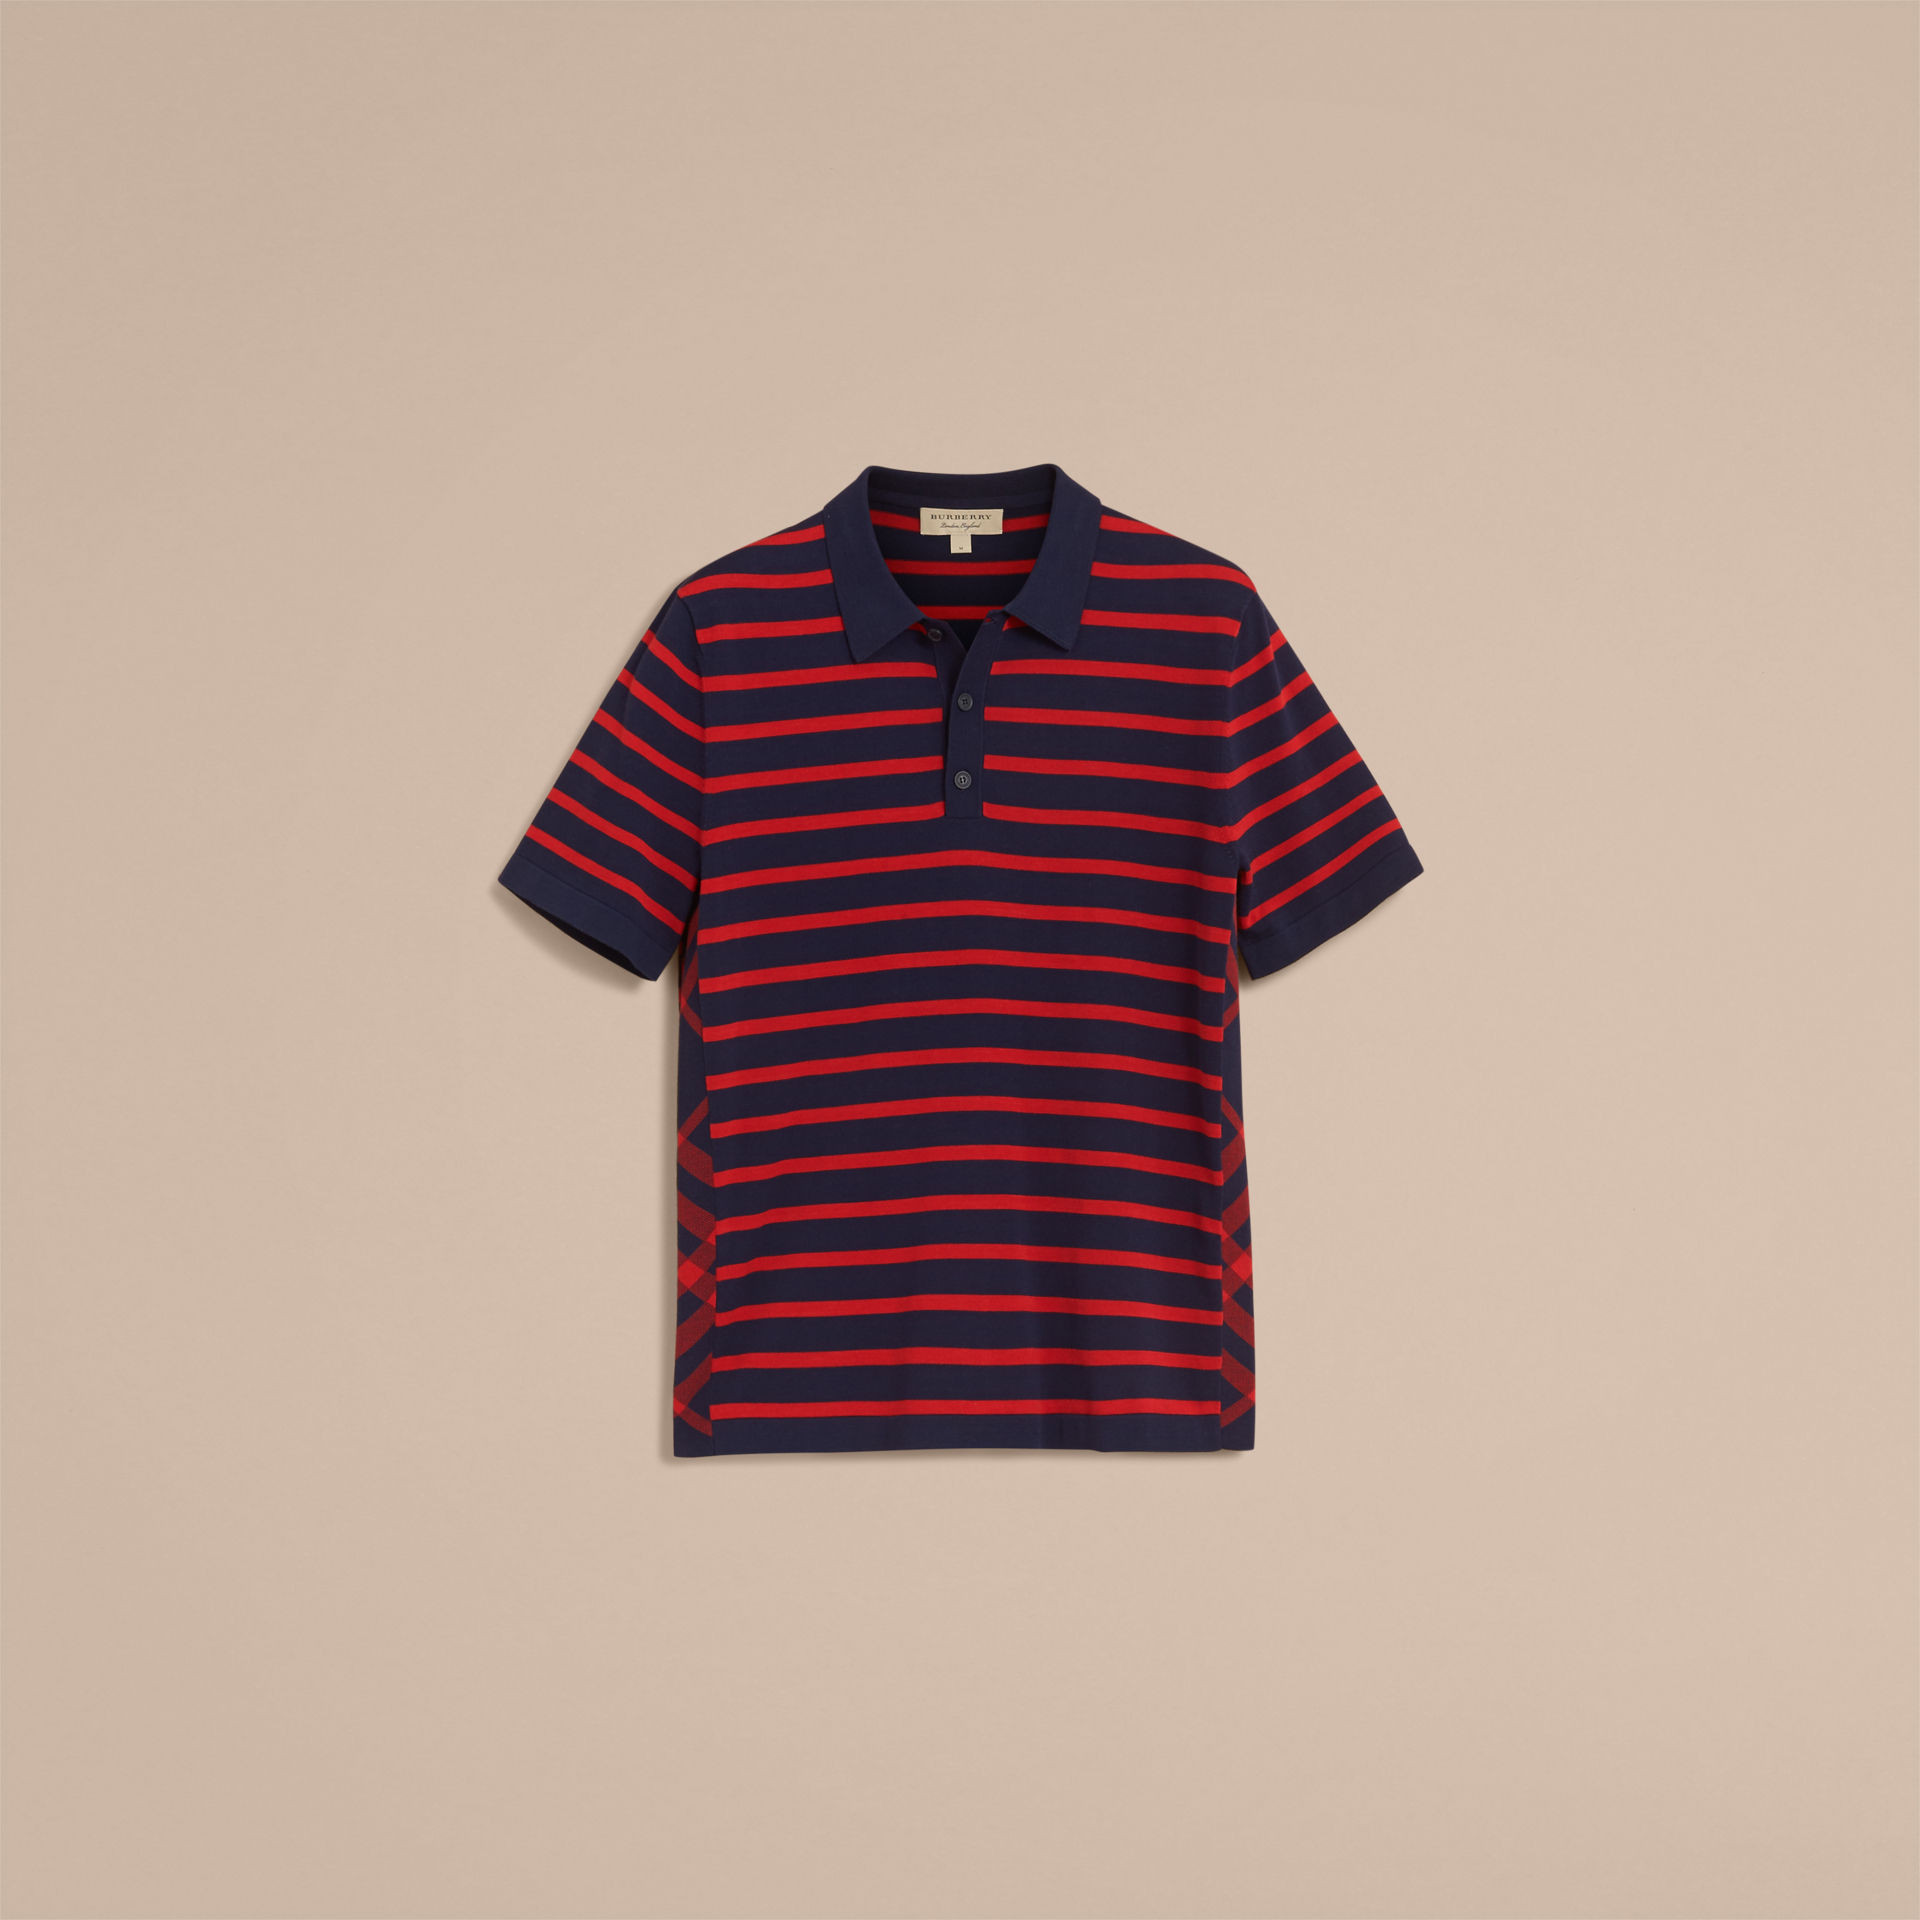 Burberry Navy Breton Stripe Cotton Polo Shirt